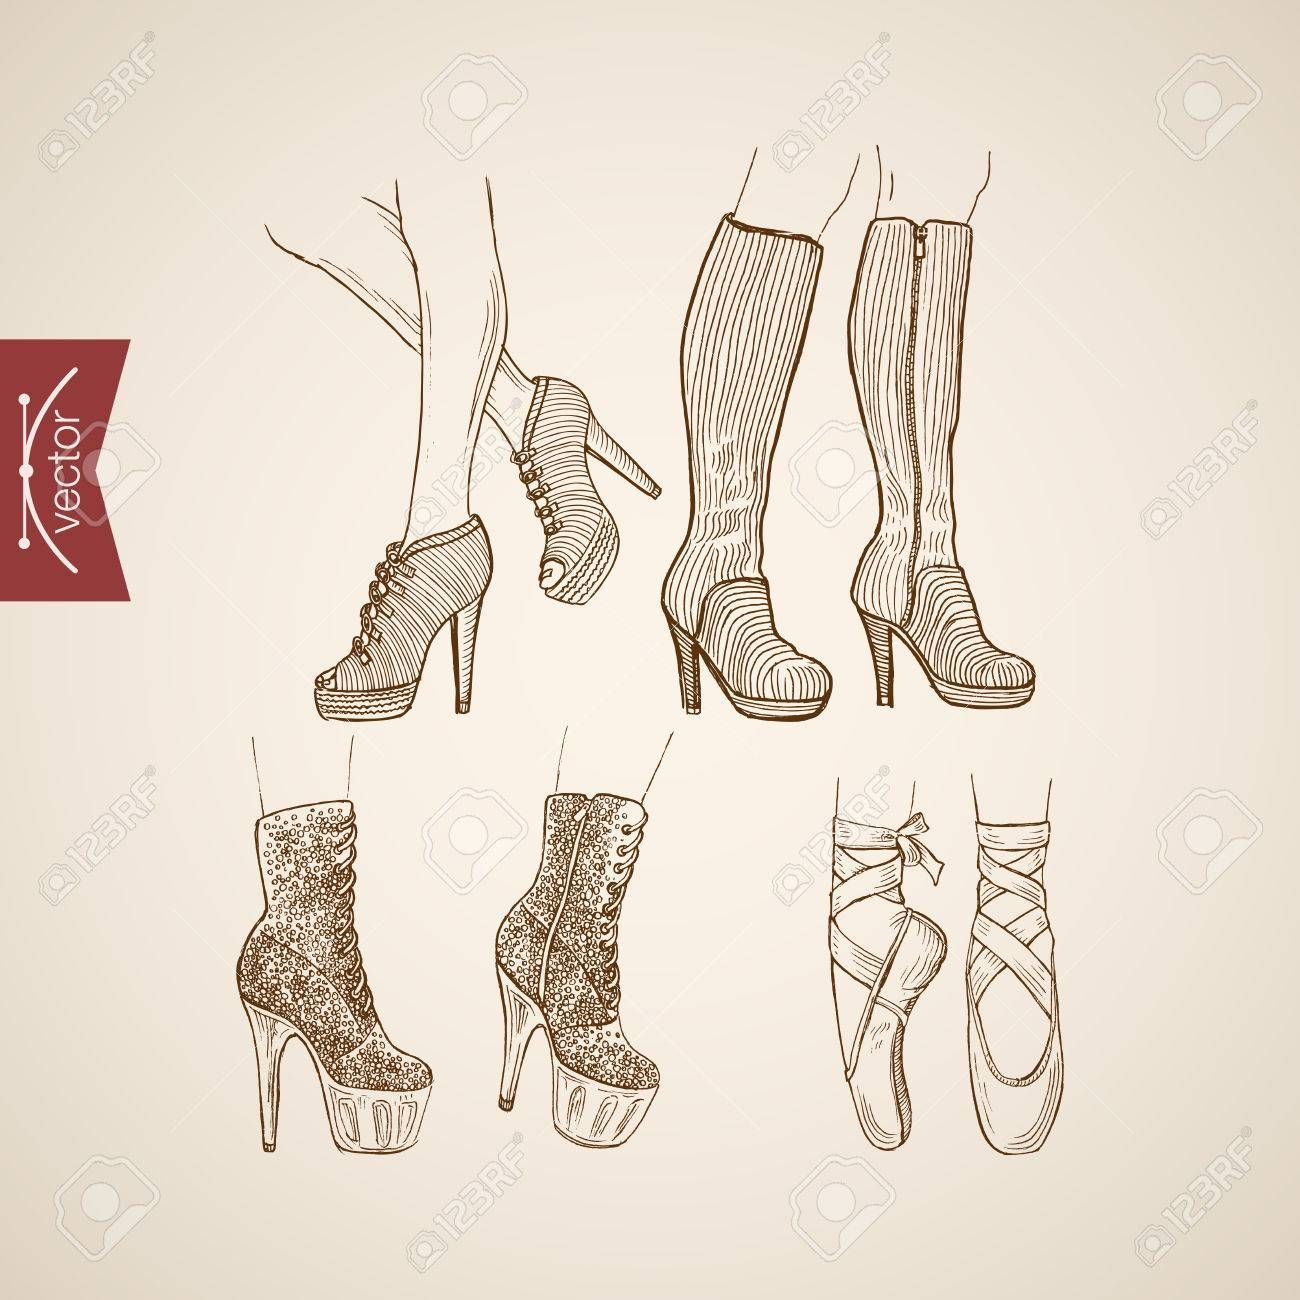 Engraving Vintage Hand Drawn High Heeled Boots And Ballet Shoes Doodle Collage Pencil Sketch Retro Fashion Illus In 2020 How To Draw Hands Drawing High Heels Sketches